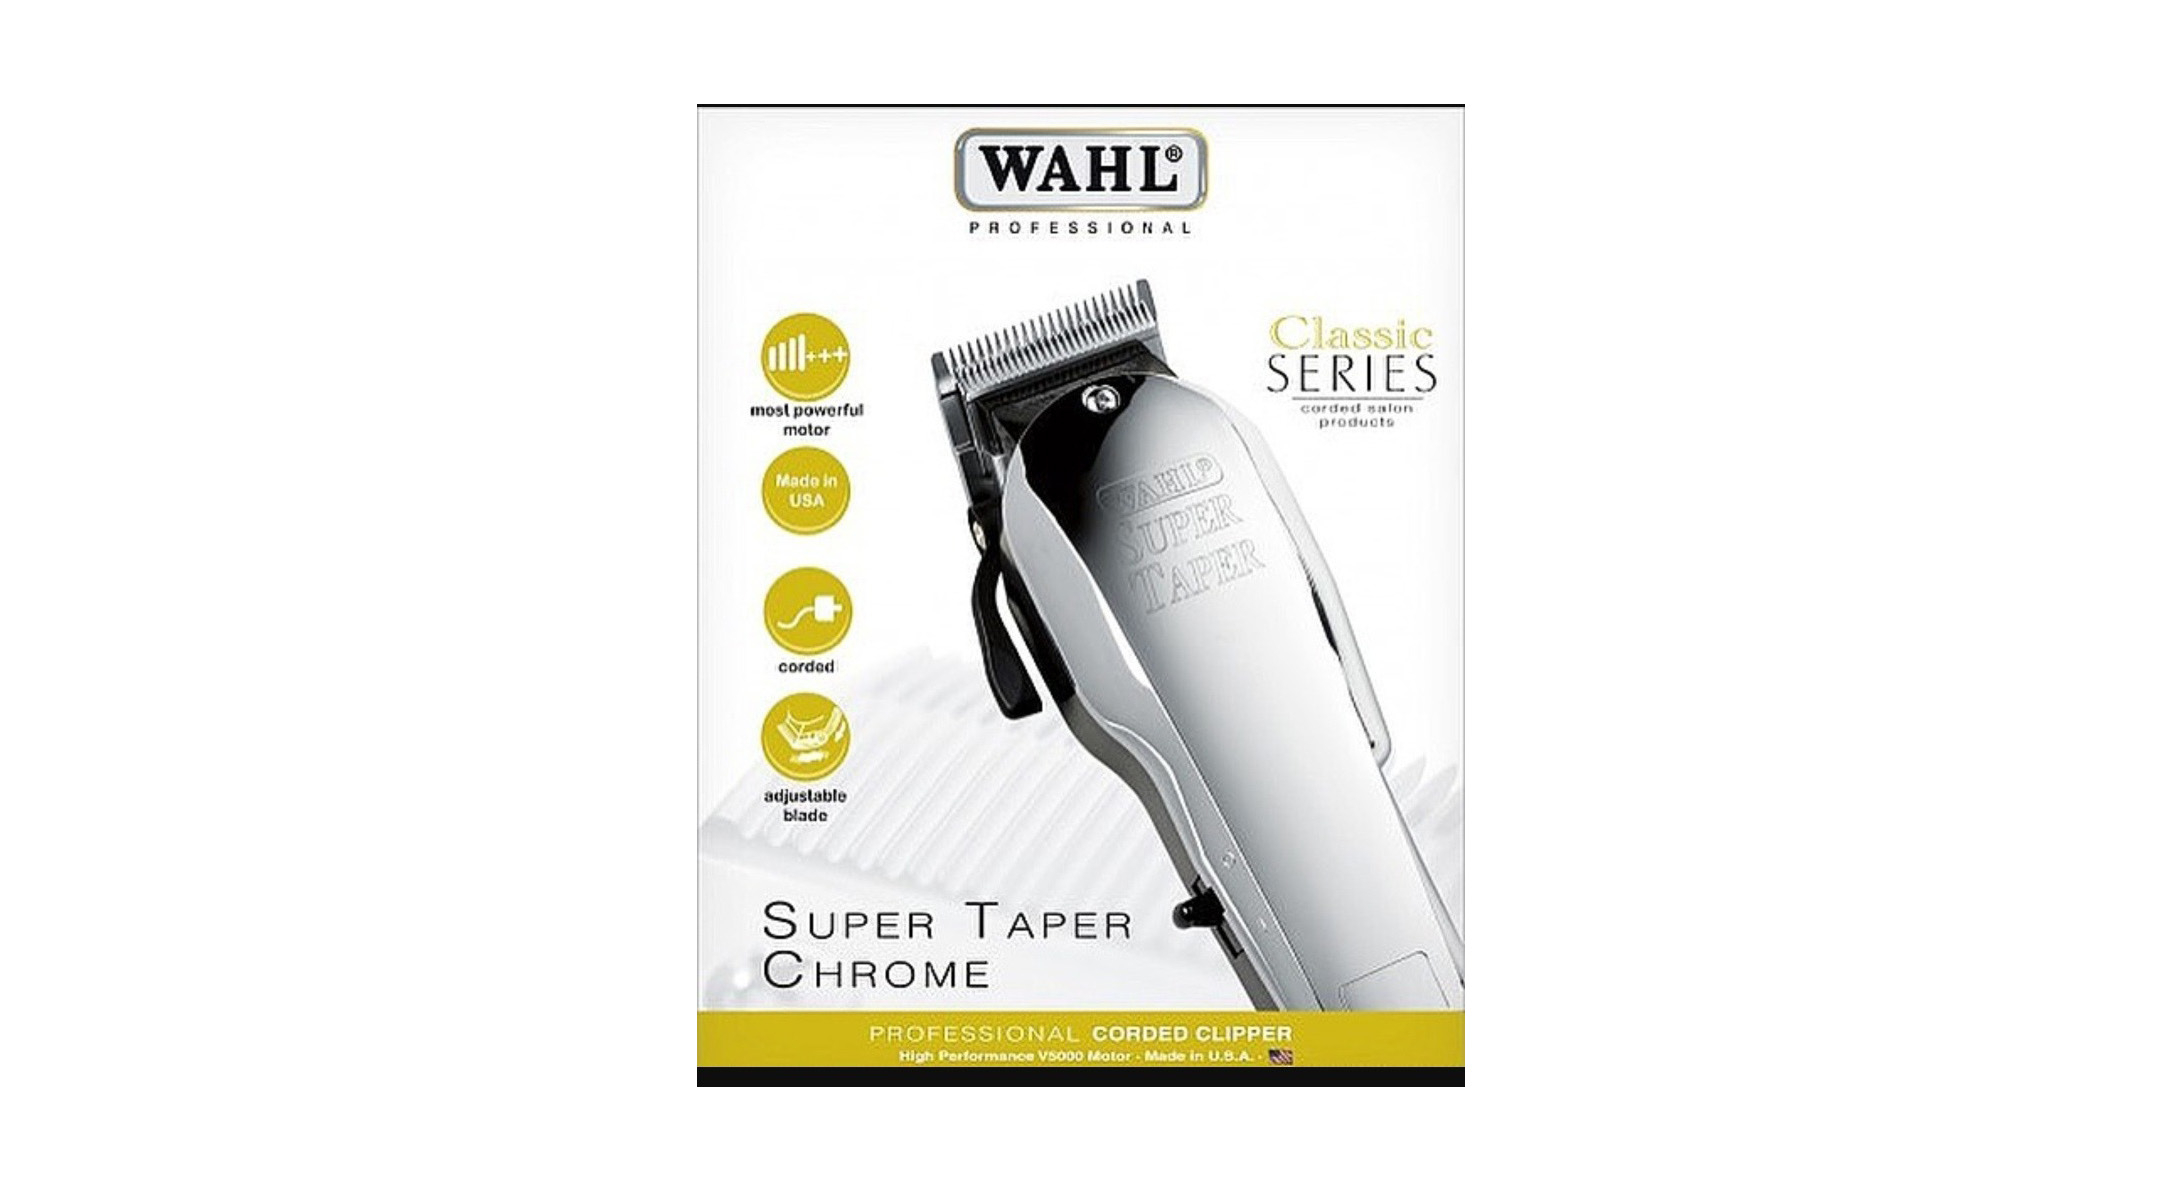 Super Taper Chrome Classic Series Wahl Professional